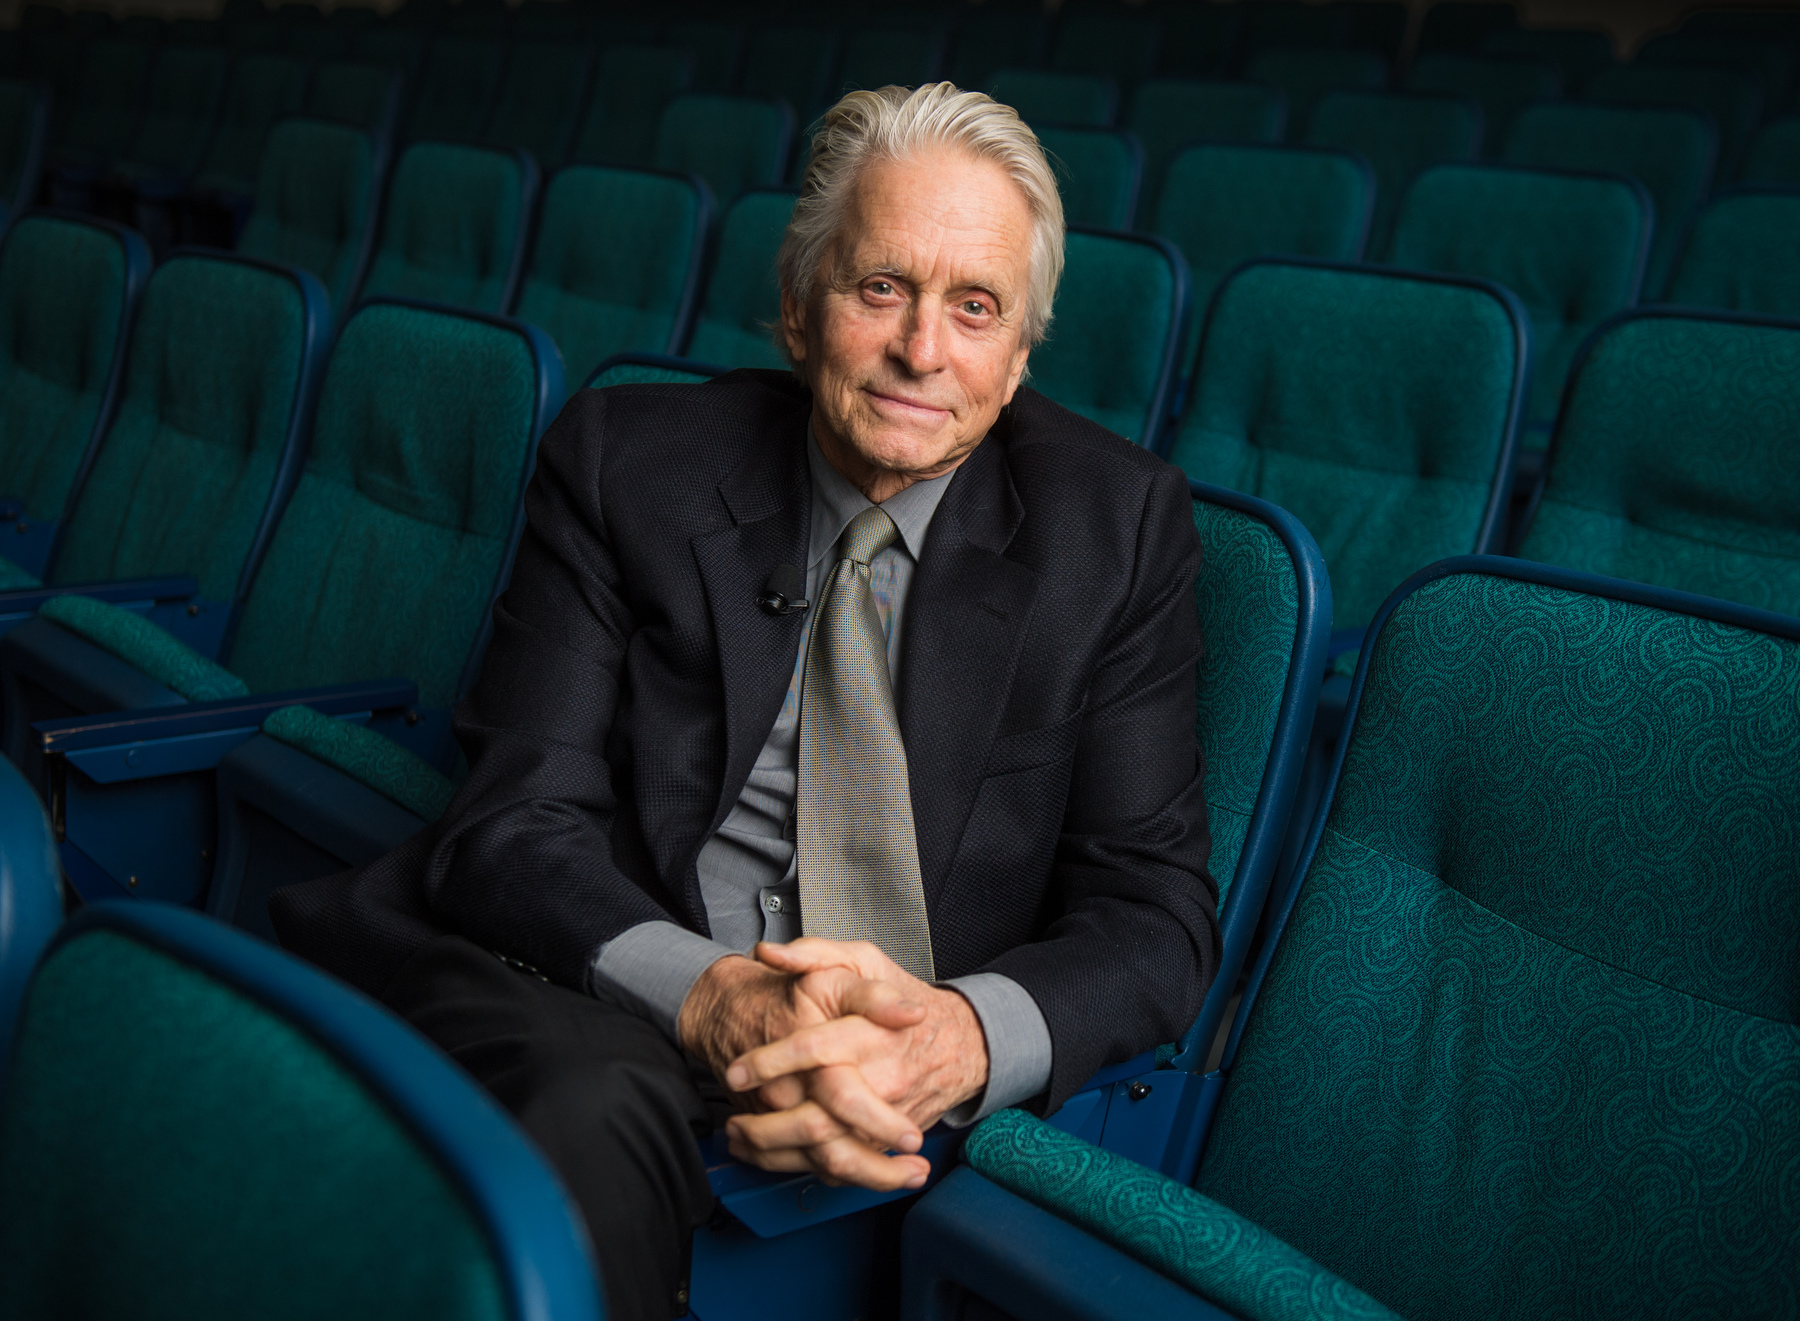 Academy Award-winning actor and producer Michael Douglas was awarded with the Bette Davis Lifetime Achievement Award by The Howard Gotlieb Archival Research Center and the Bette Davis Foundation November 28, 2018 at the GSU.